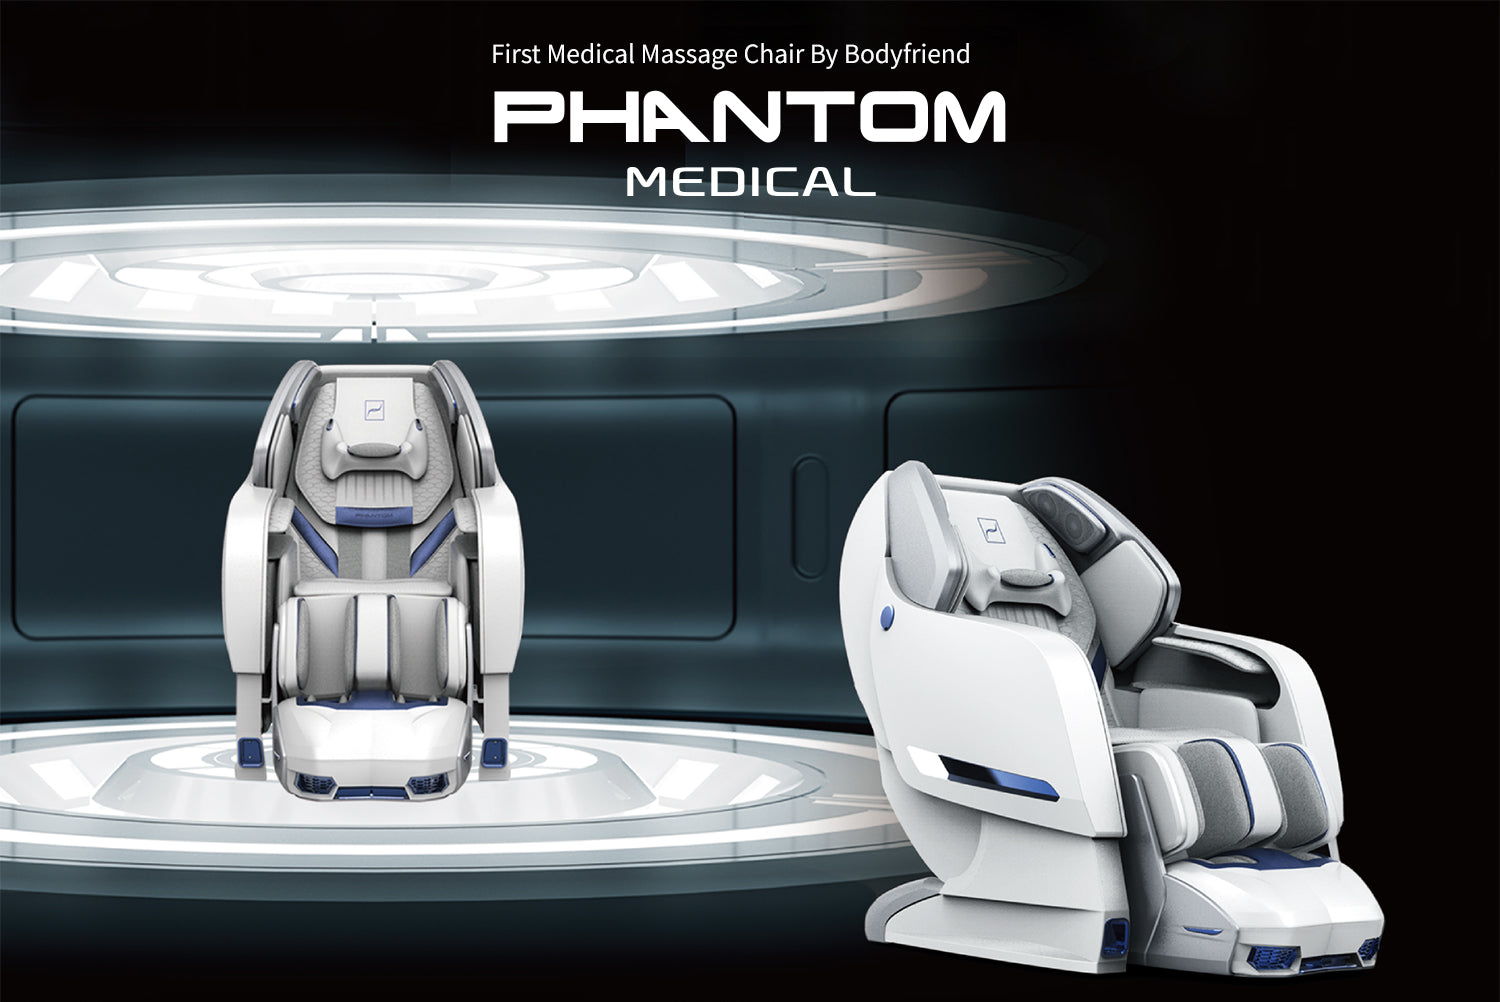 Introducing First Medical Massage Chair